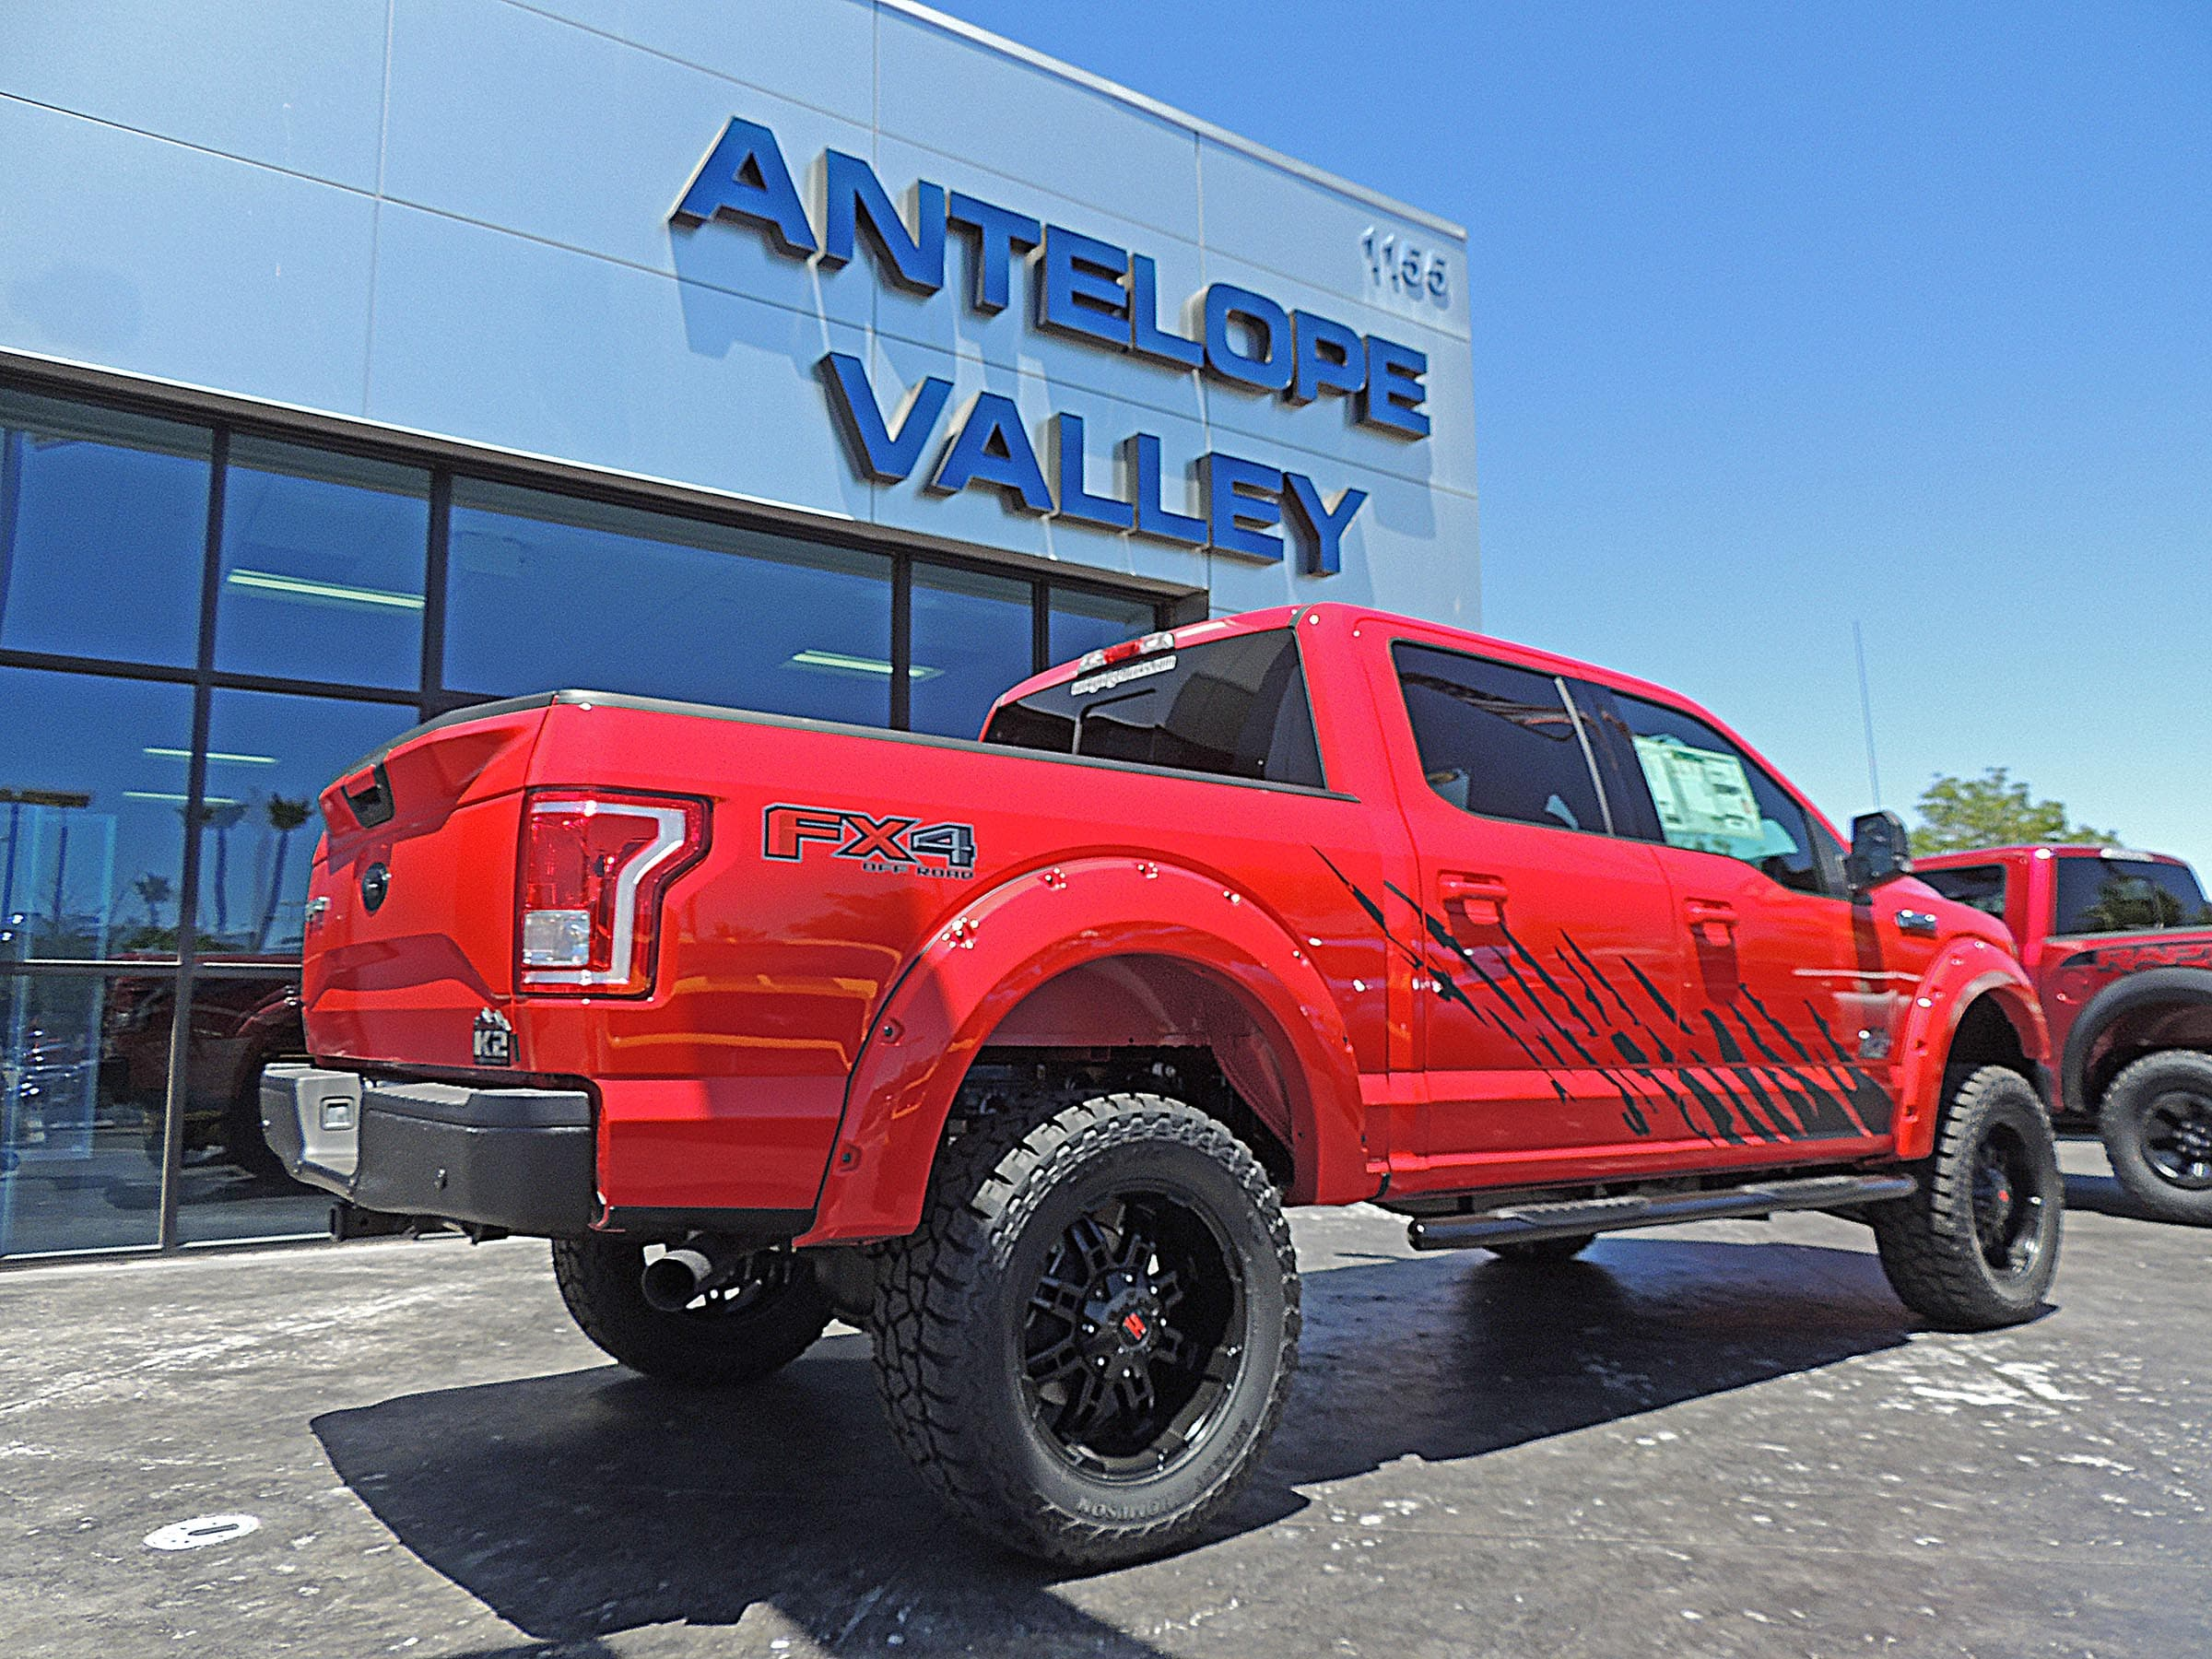 Antelope Valley Ford | Vehicles for sale in Lancaster, CA ...